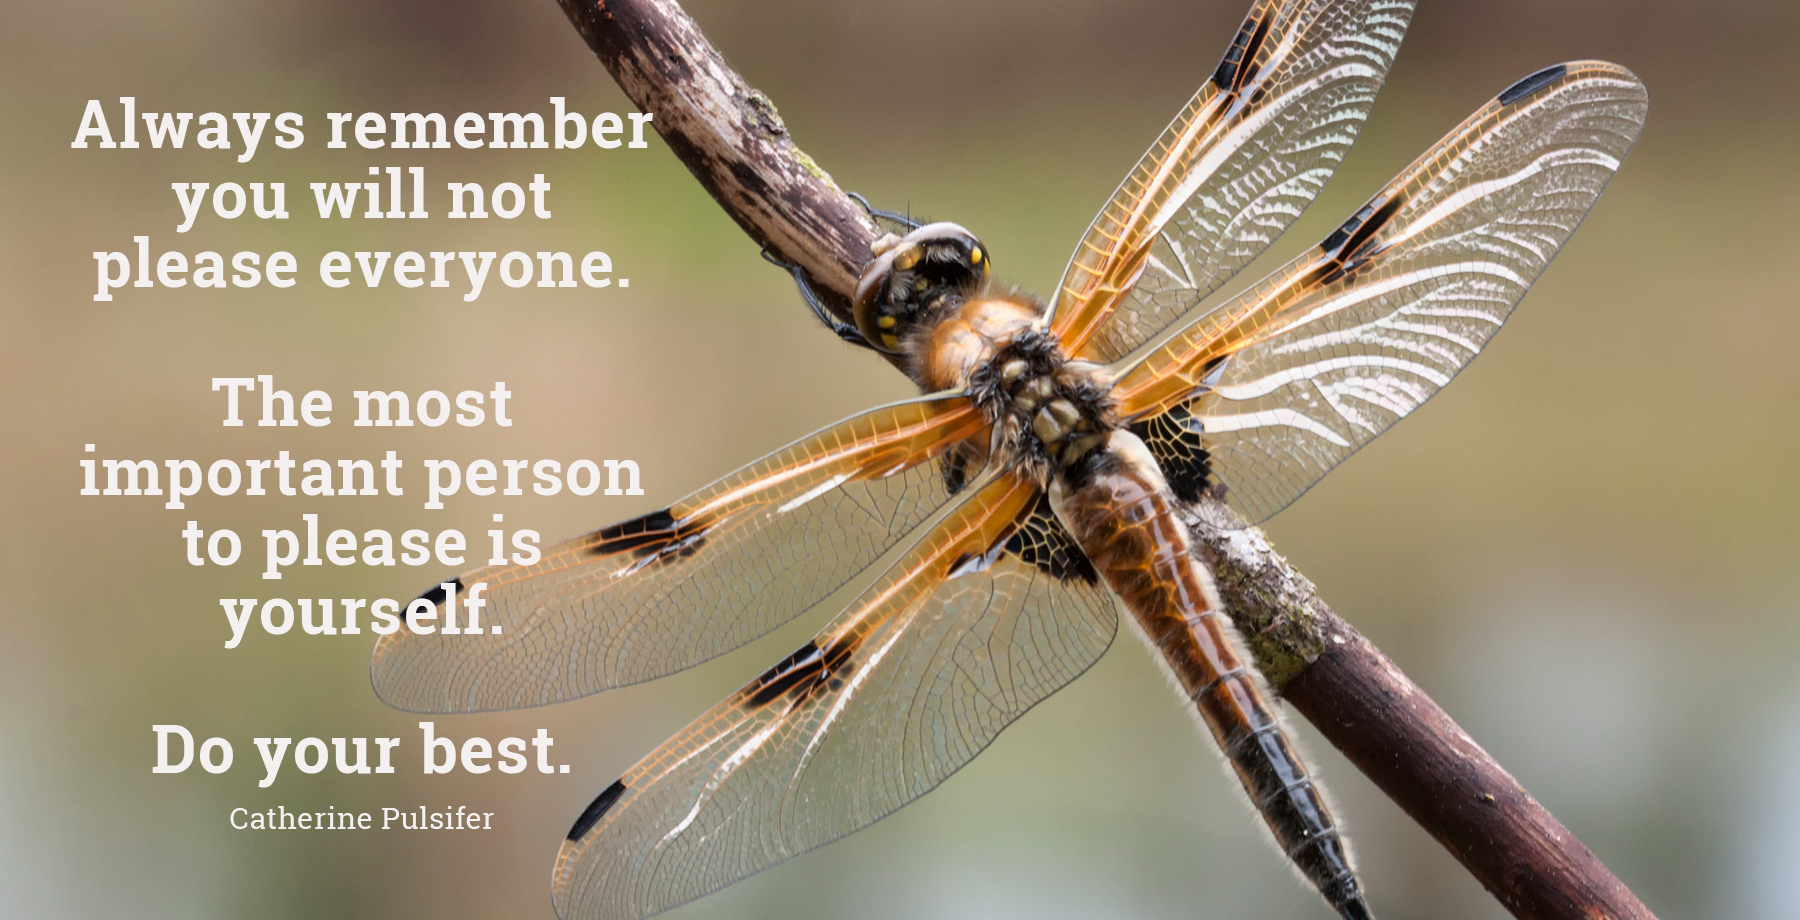 daily inspirational quote image: close up of an orange and back dragonfly on a branch